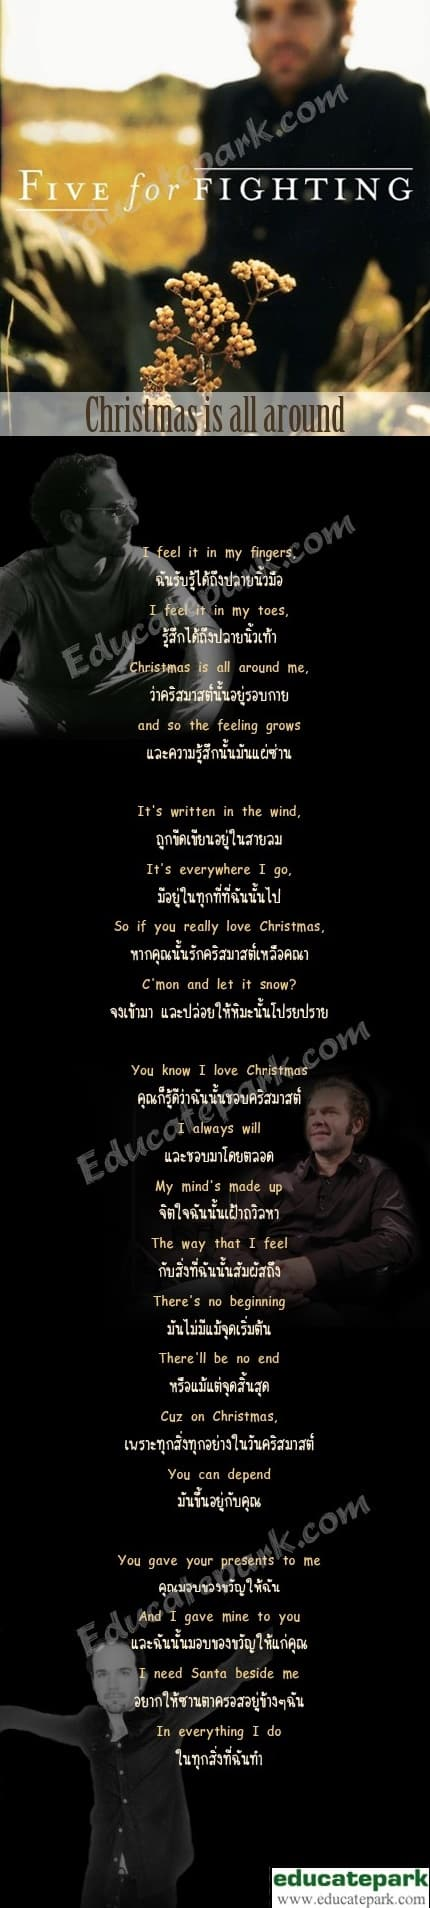 แปลเพลง Christmas Is All Around - Five For Fighting